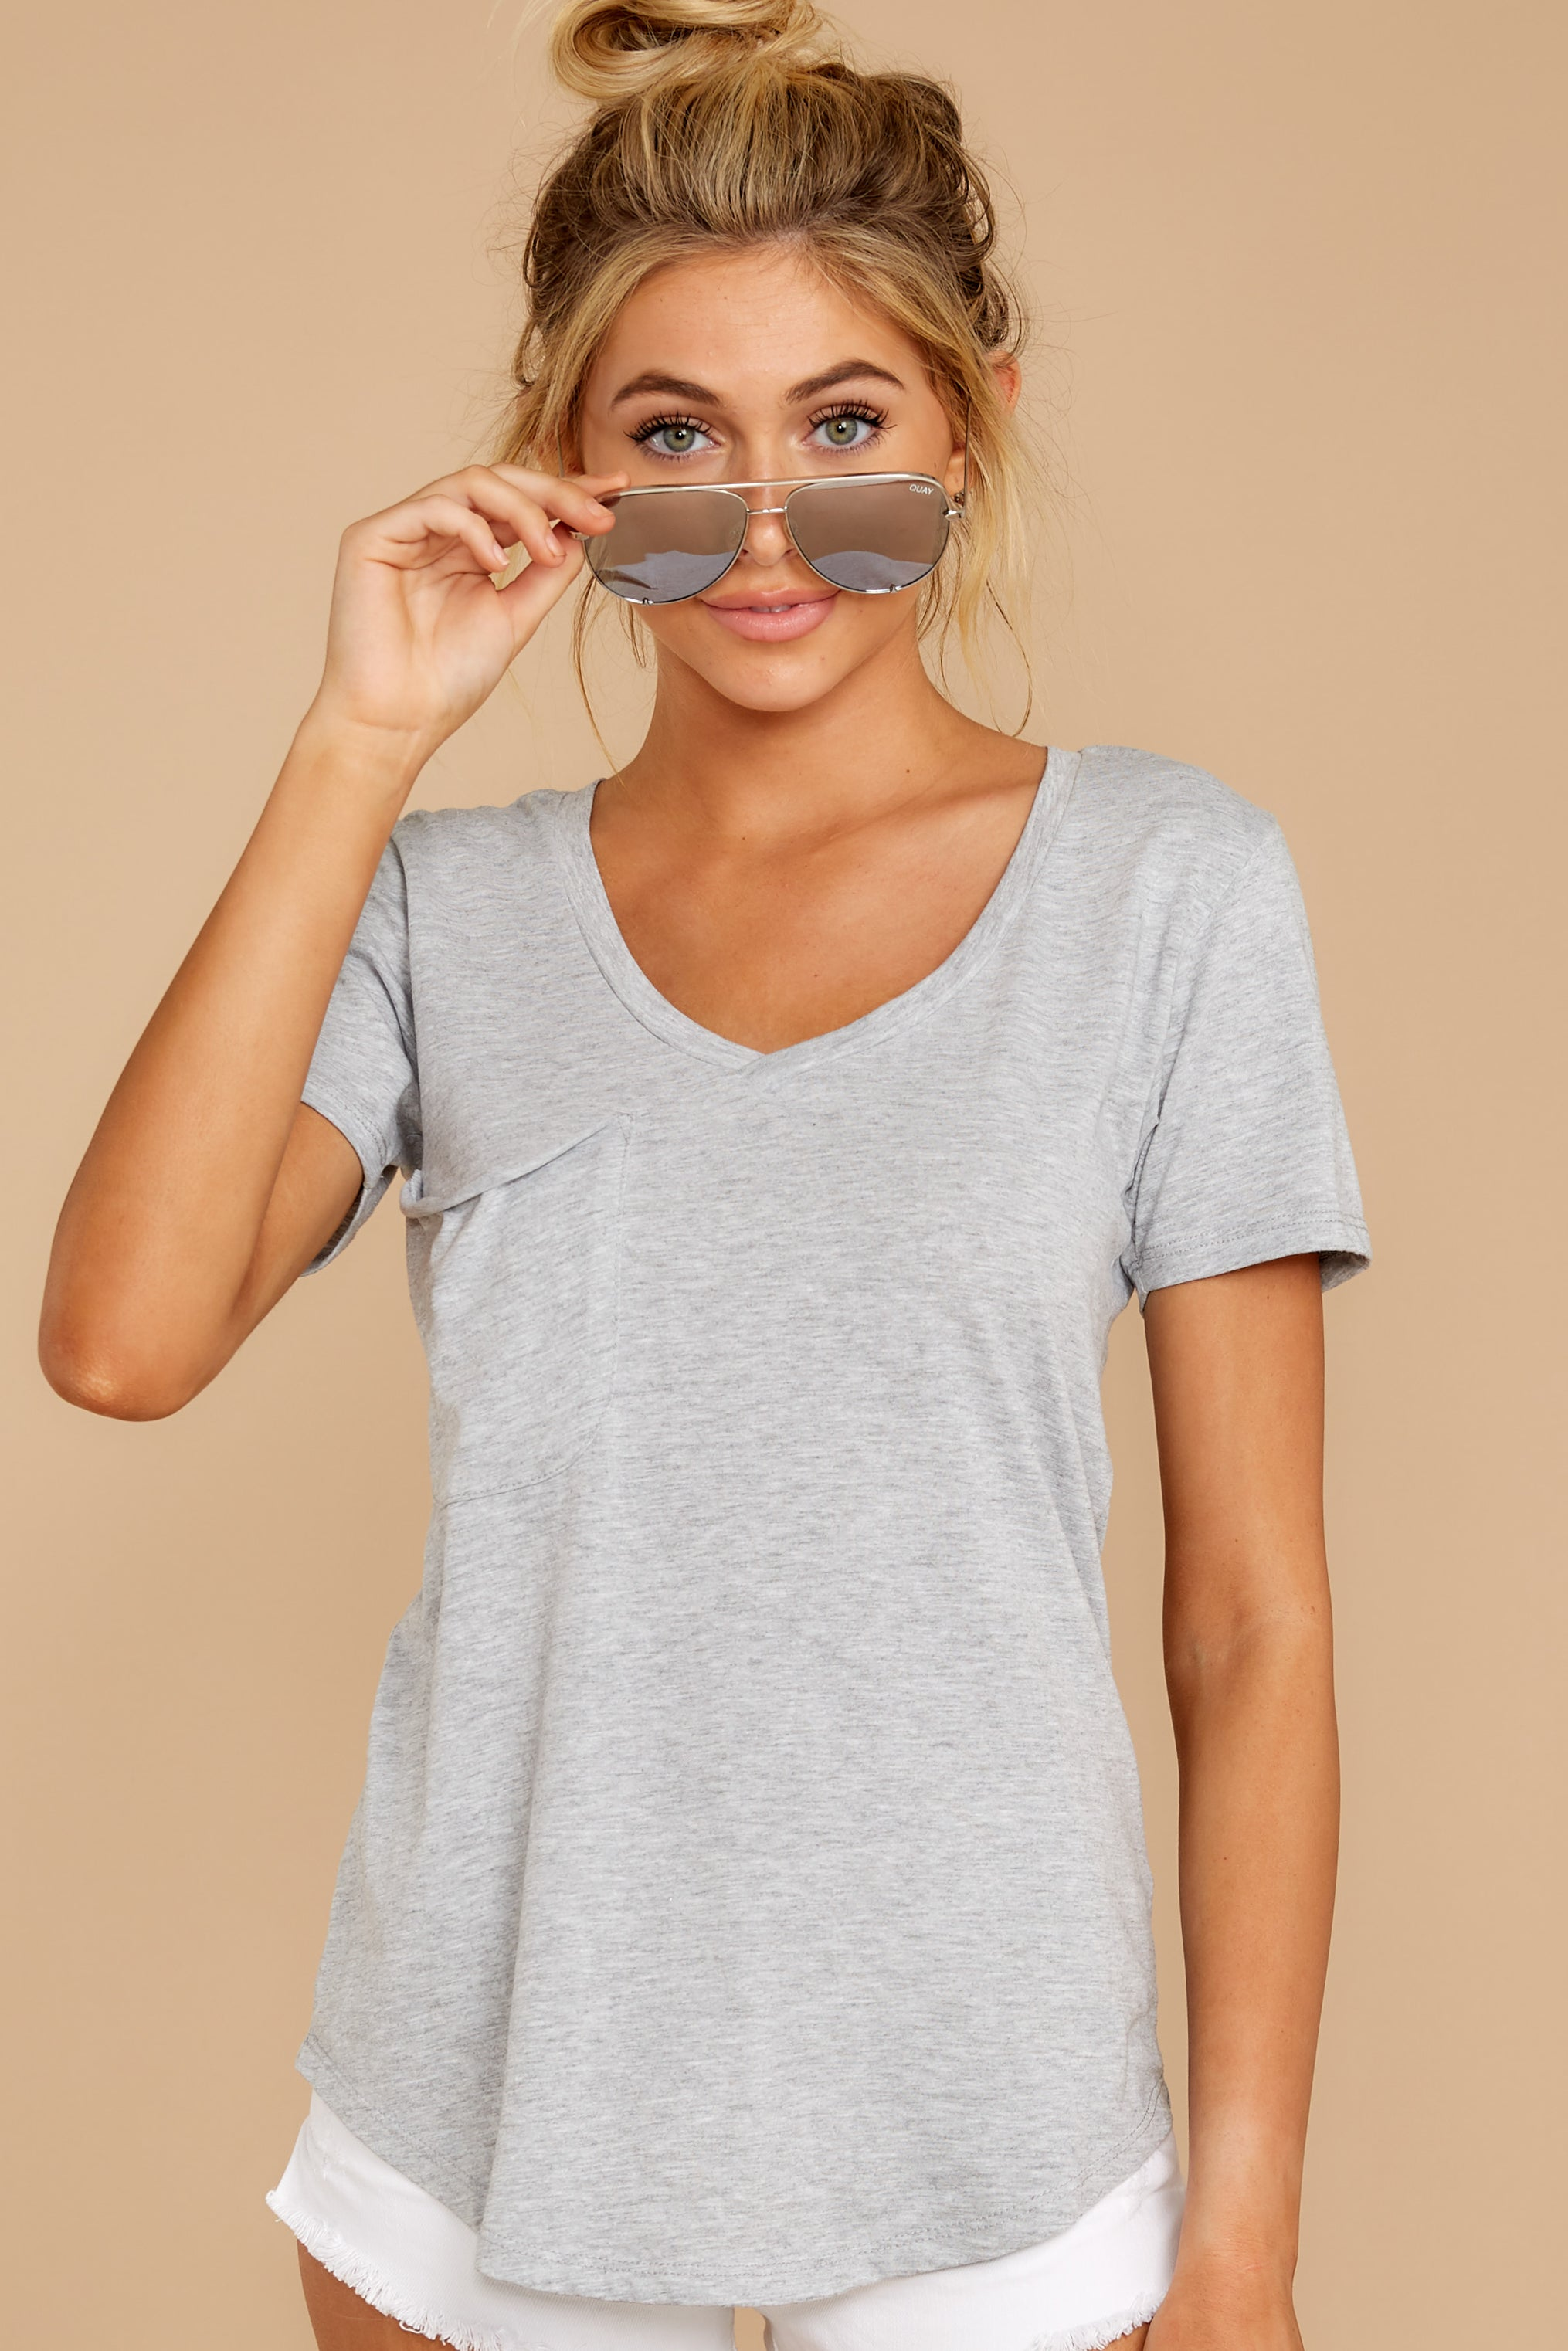 12 Pocket Tee in Heather Grey at reddressboutique.com